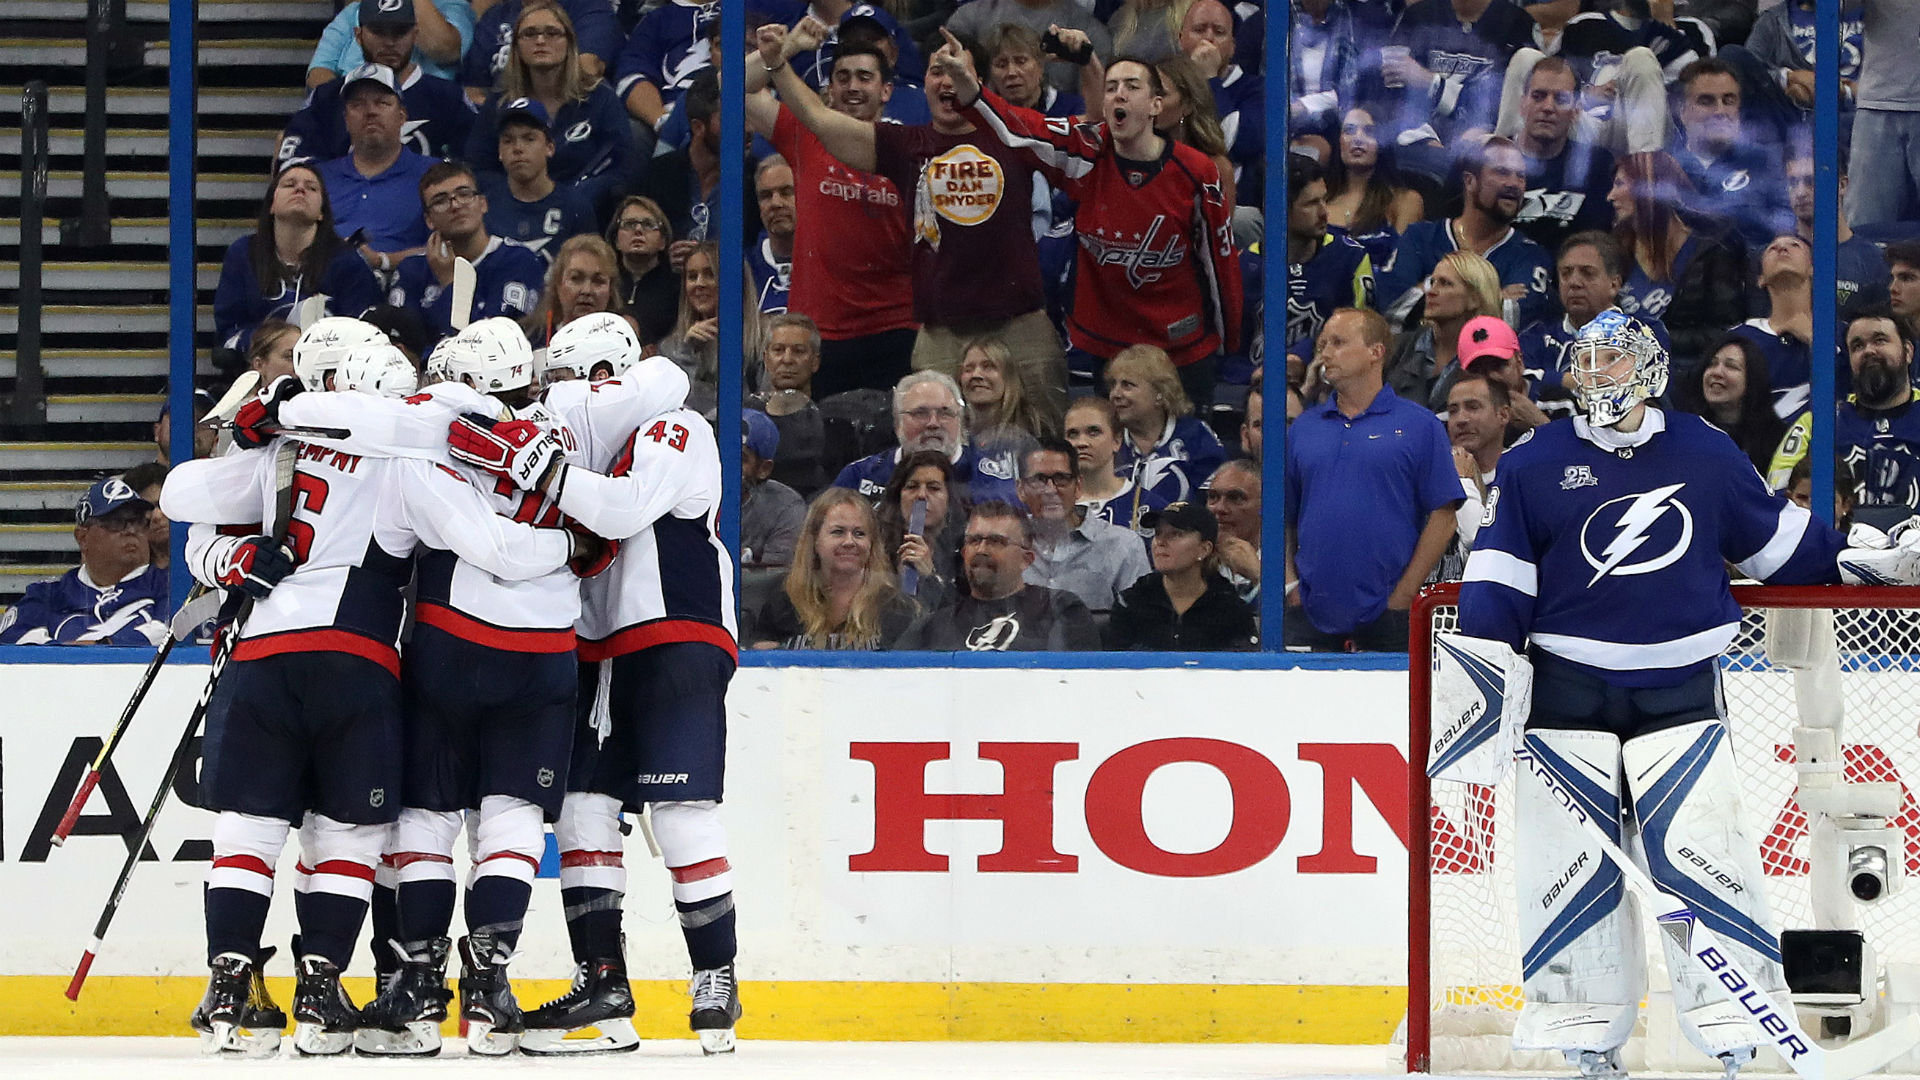 Highlights: Caps keep rolling in Game 2, crush Tampa Bay 6-2